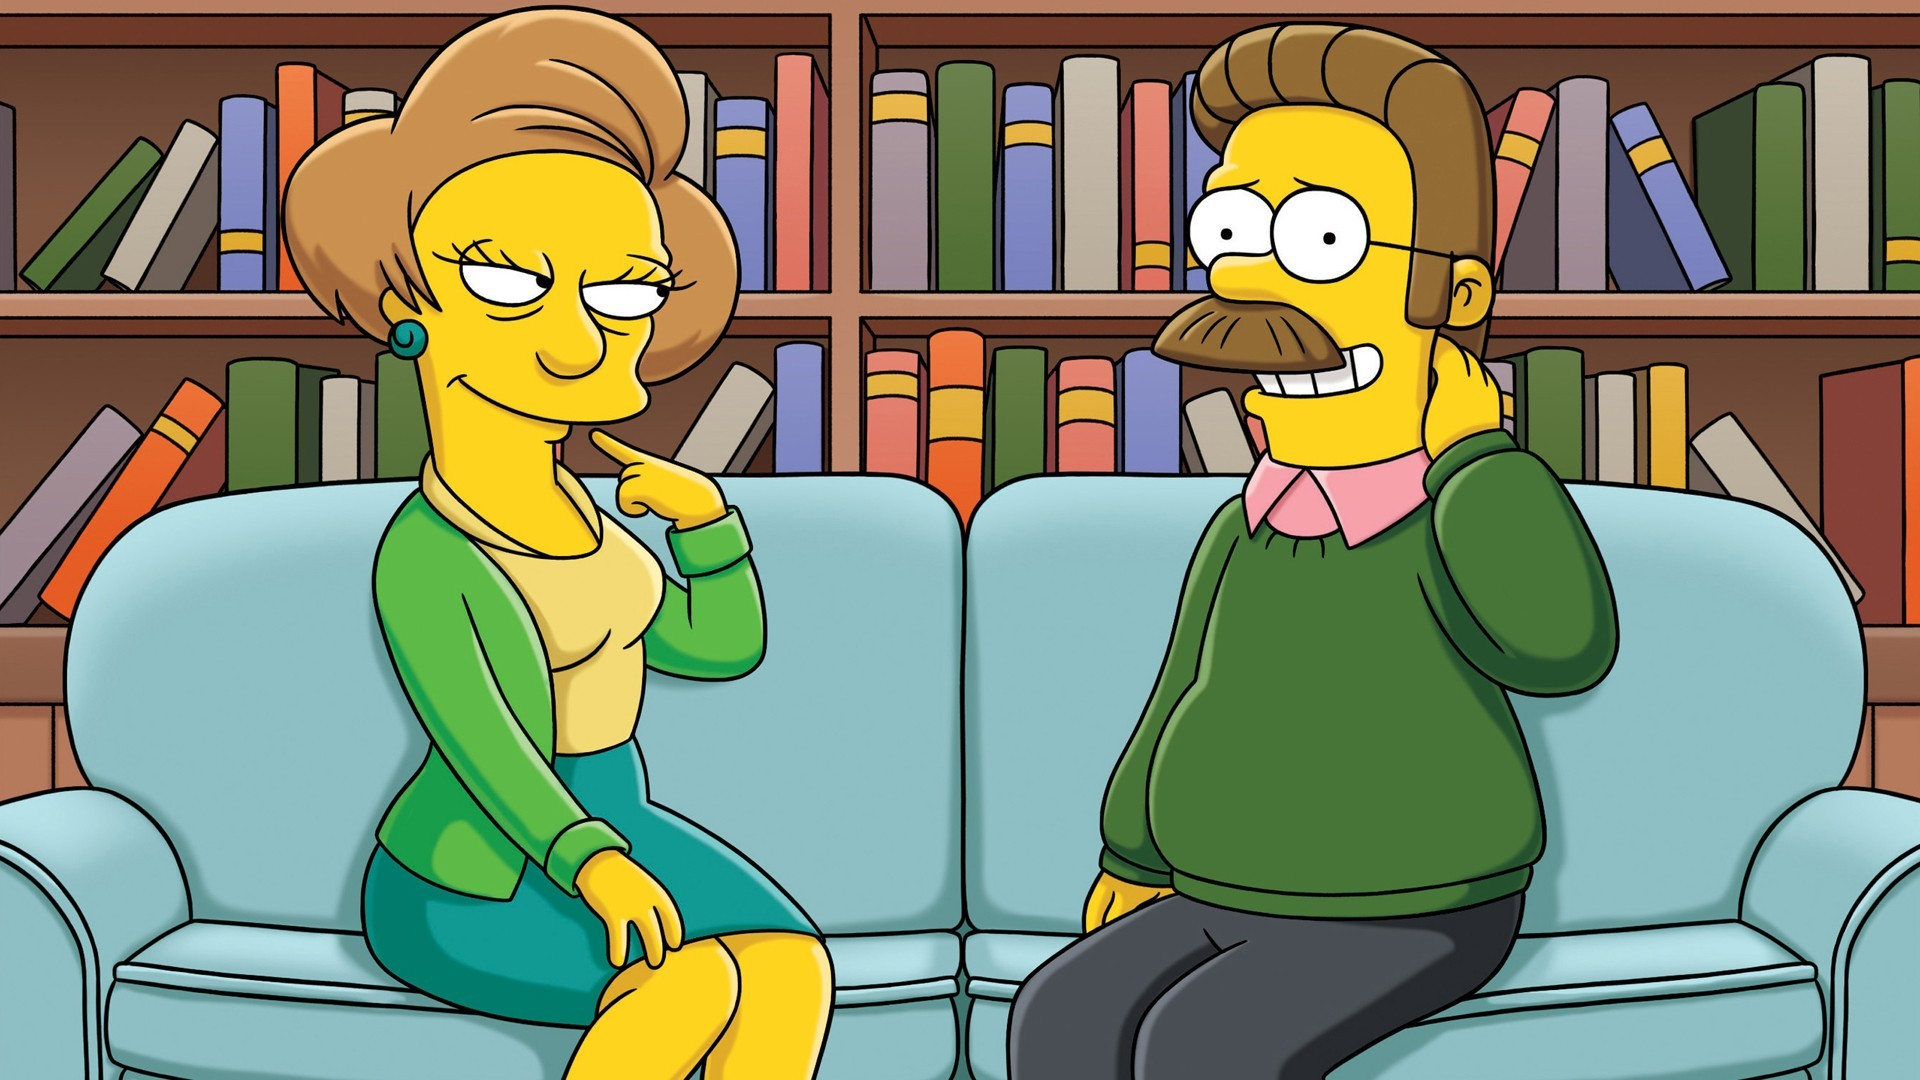 The Simpsons ned flanders HD Wallpaper